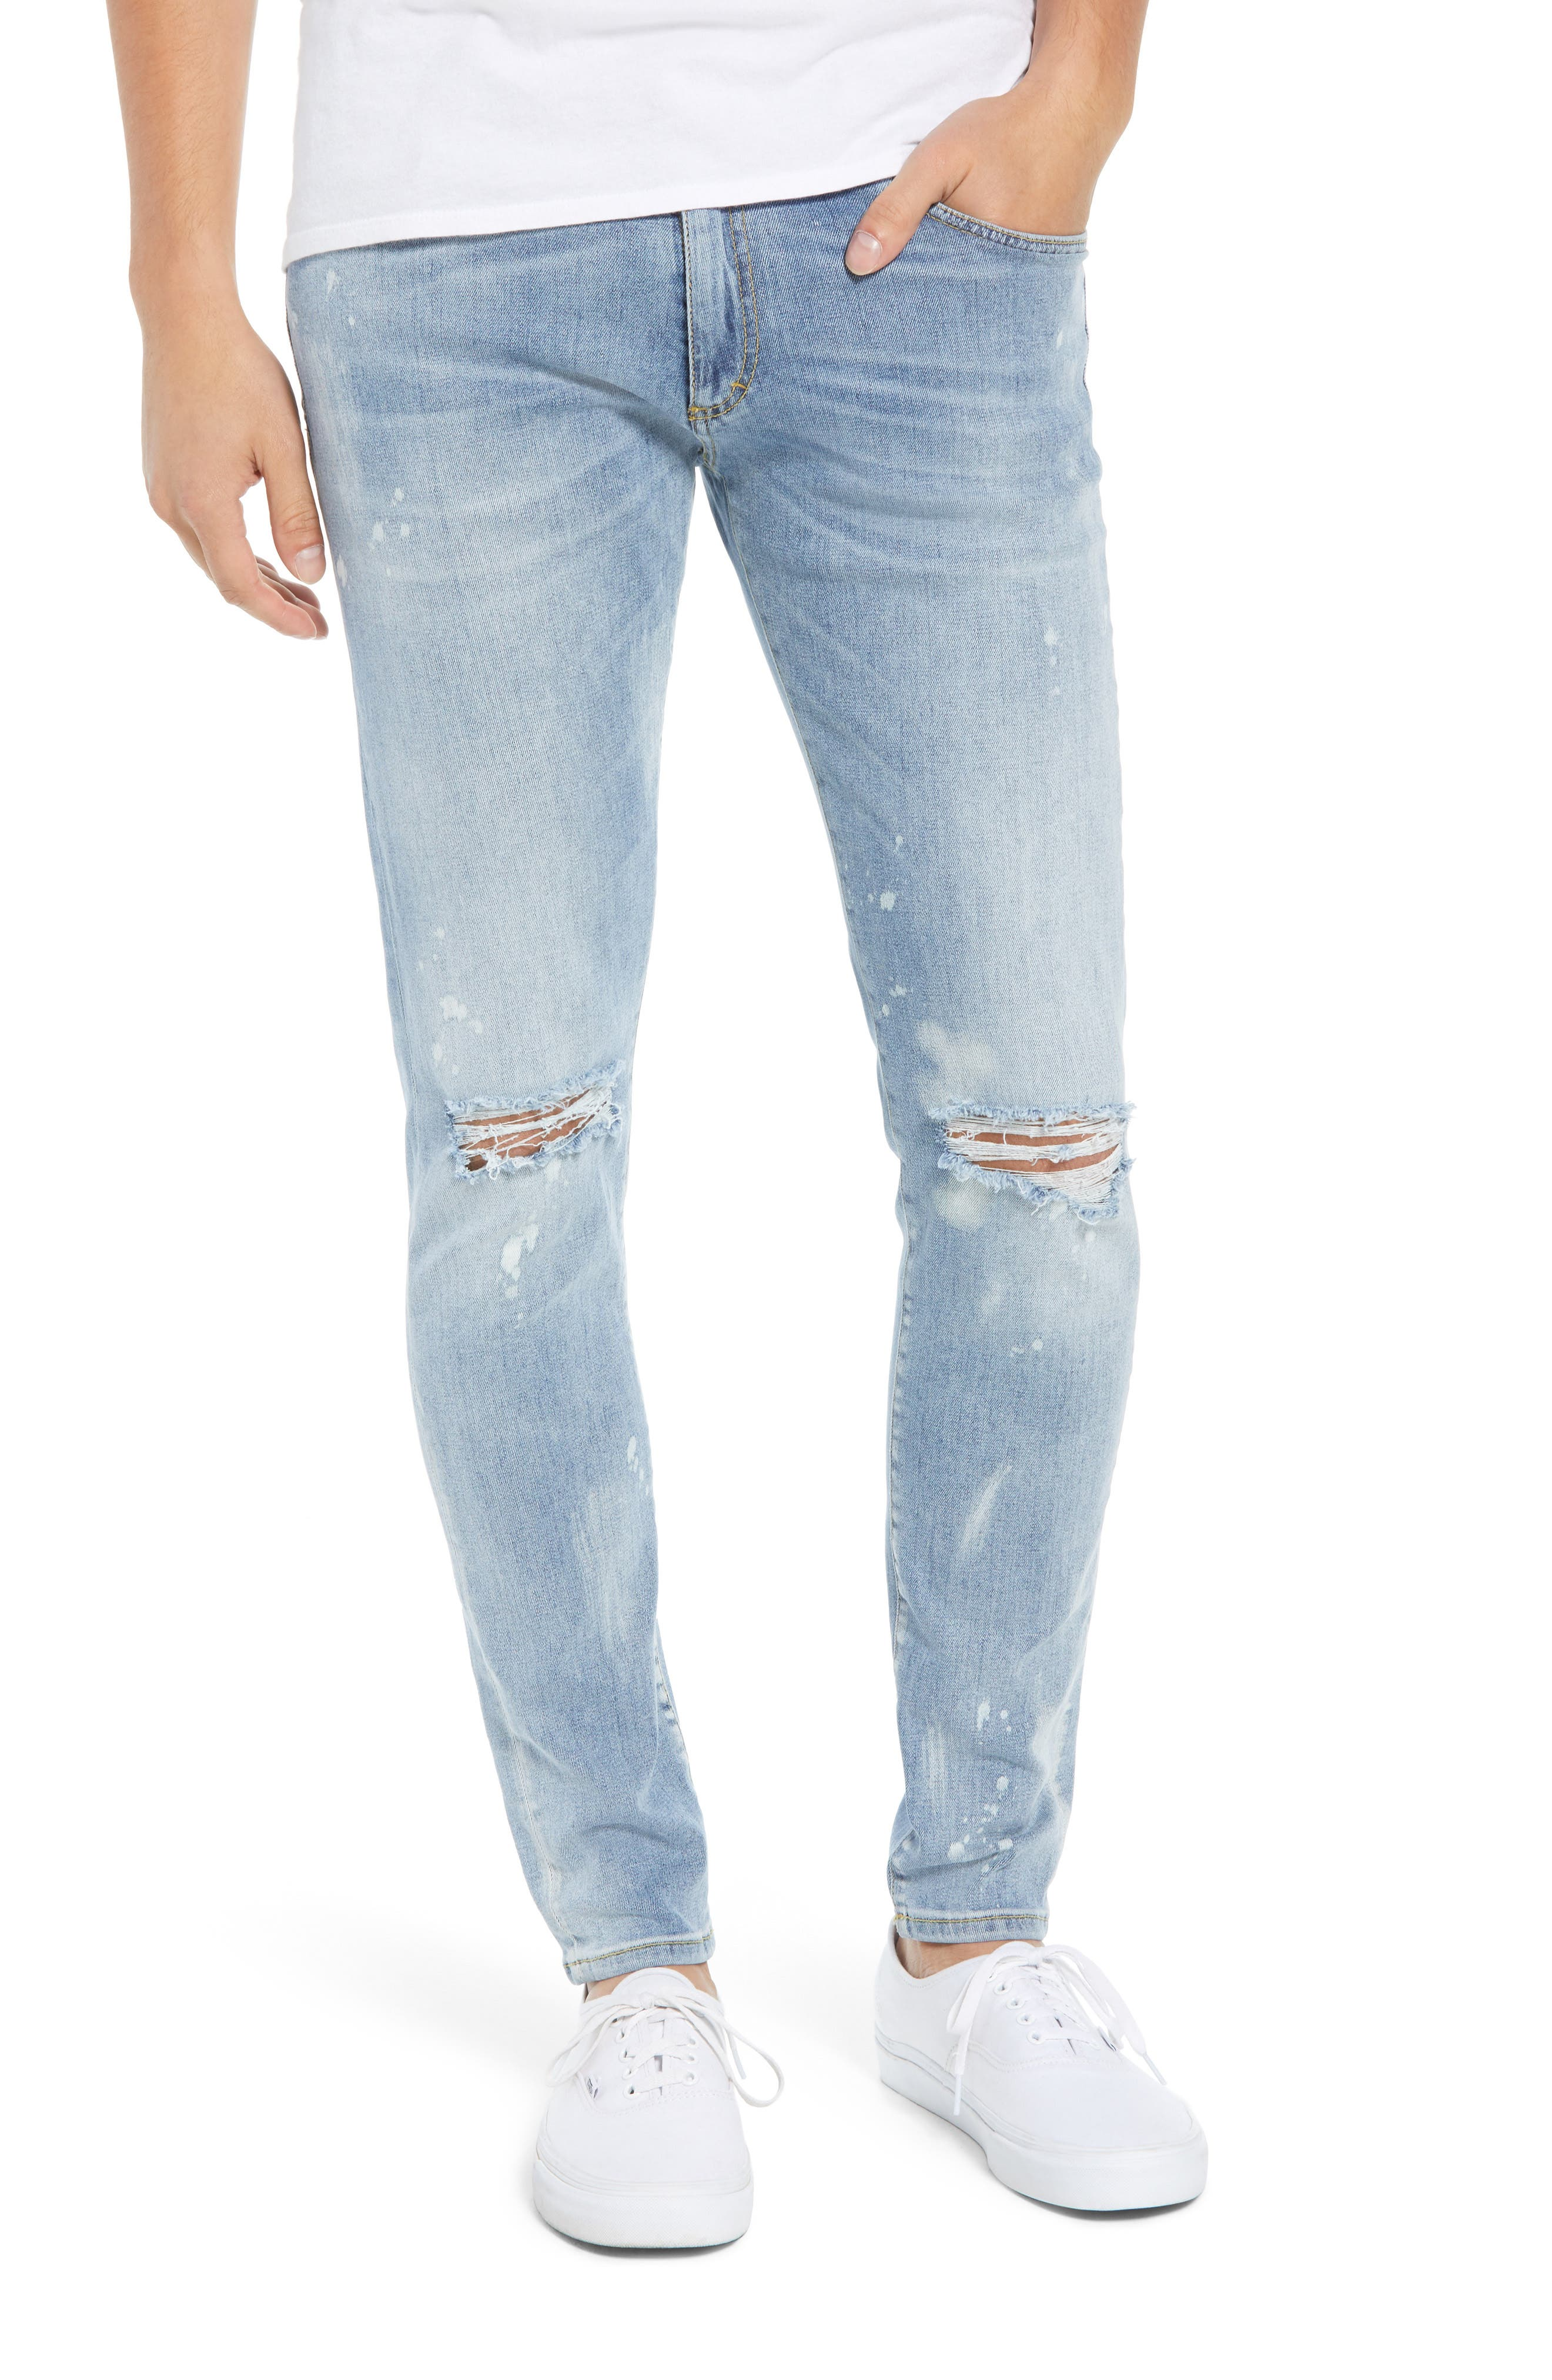 Destroyer Ripped Slim Fit Jeans,                             Main thumbnail 1, color,                             BLUE